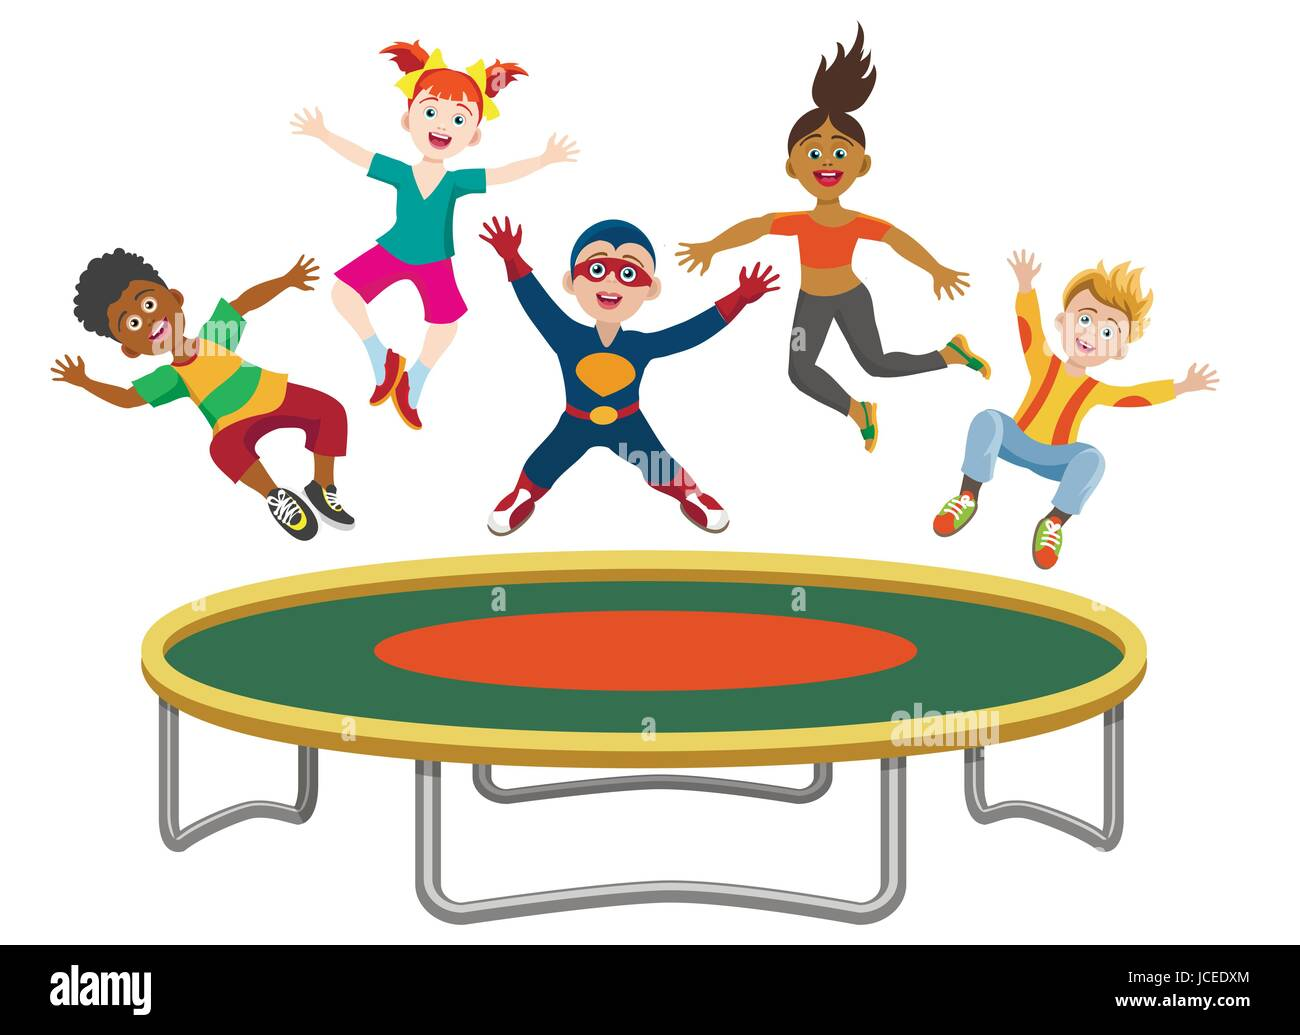 Tappeto Elastico Energetics Energetic Kids Jumping On Trampoline Isolated On White